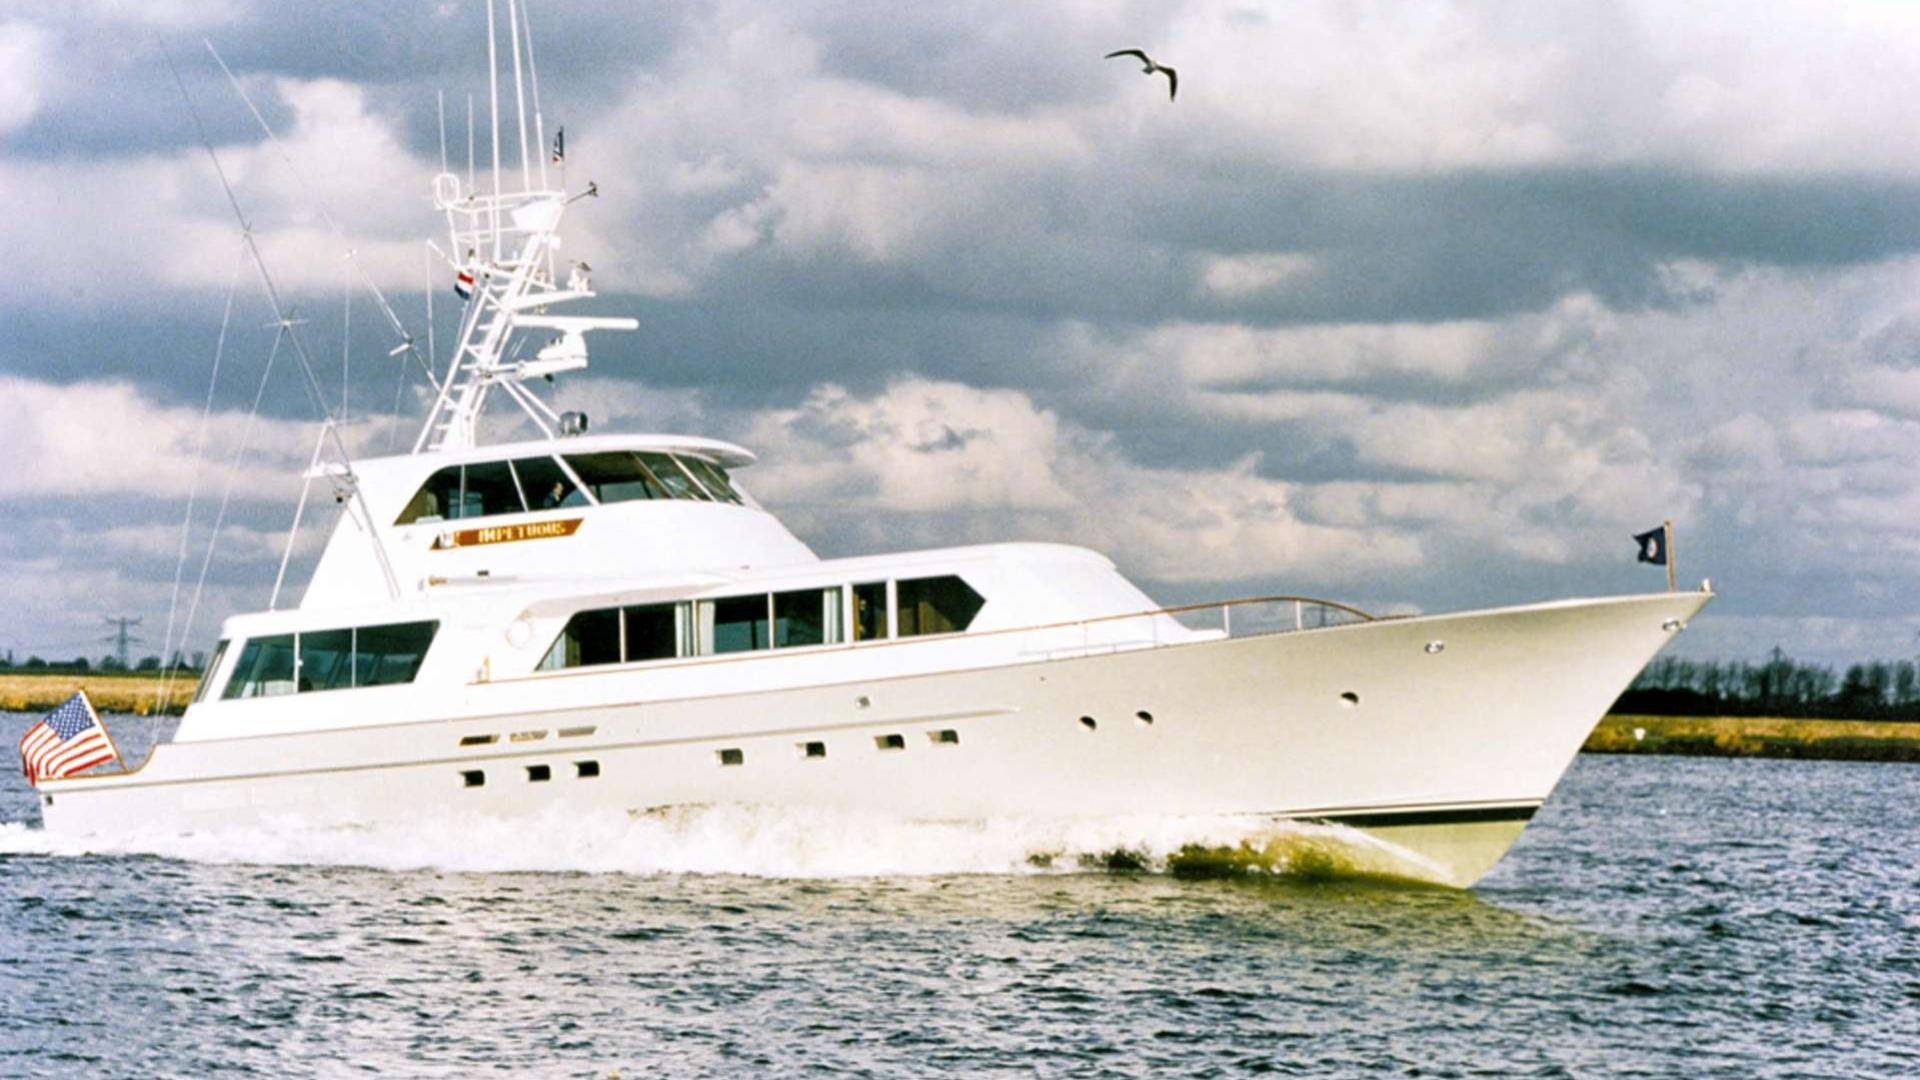 impetuous-motor-yacht-feadship-1977-26m-cruising